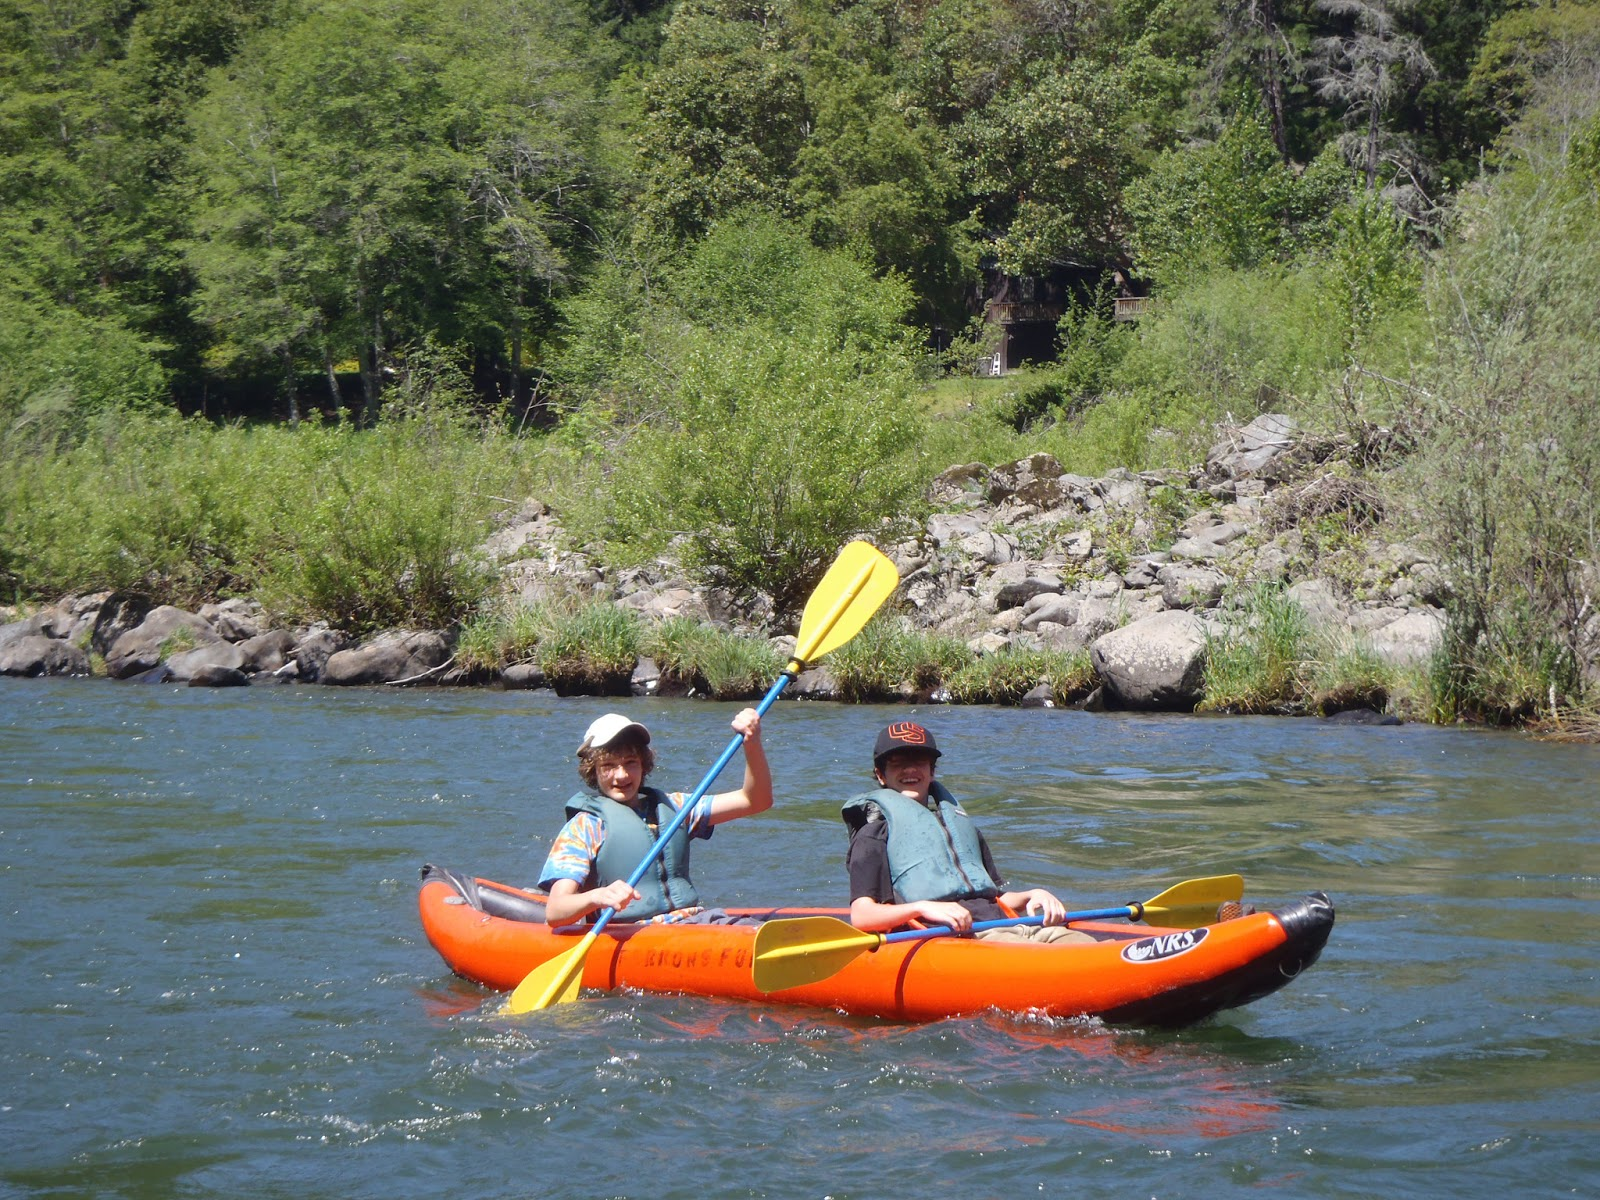 rogue river men Experience rogue river rafting on southern oregon's most popular whitewater rafting river with oars featuring top guides & equipment, tasty meals & more.